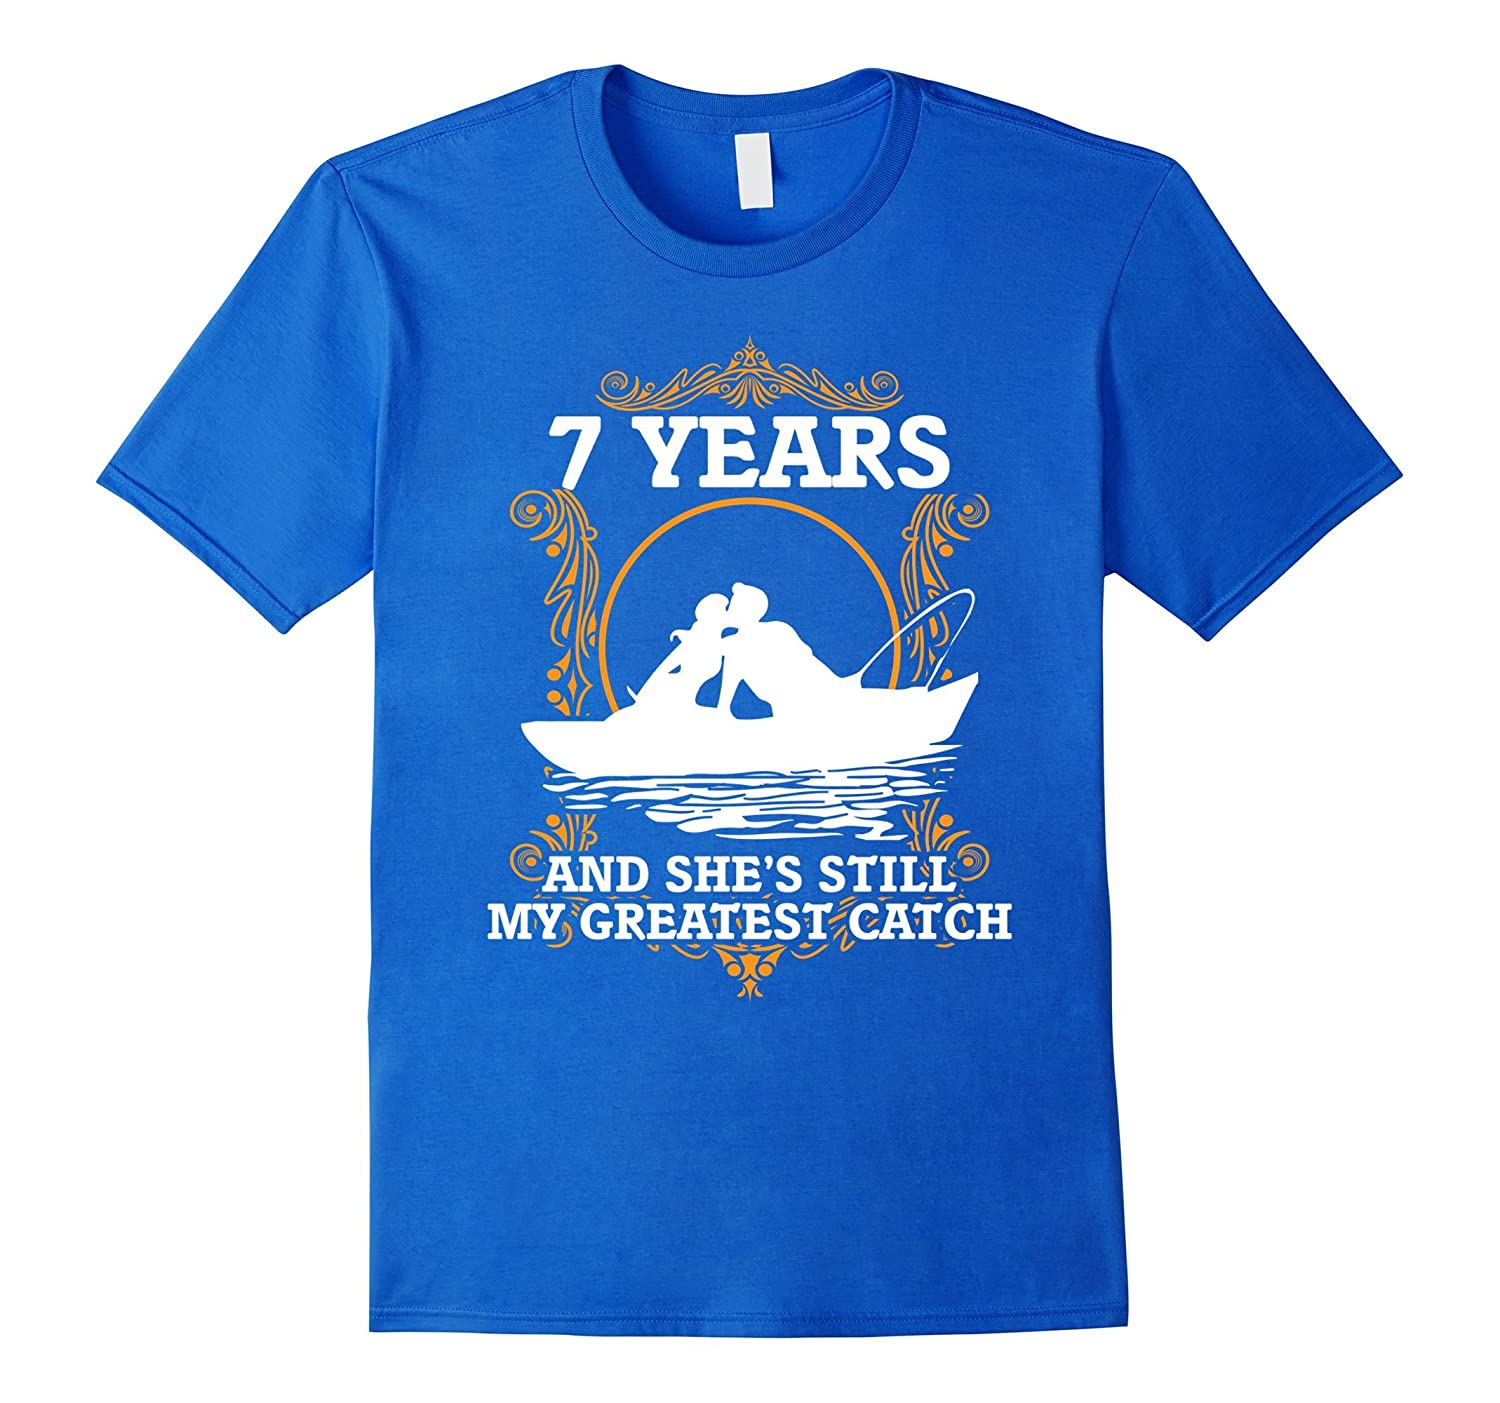 Funny Fishing Anniversary Gifts for Him 7 Year Anniversary-CL